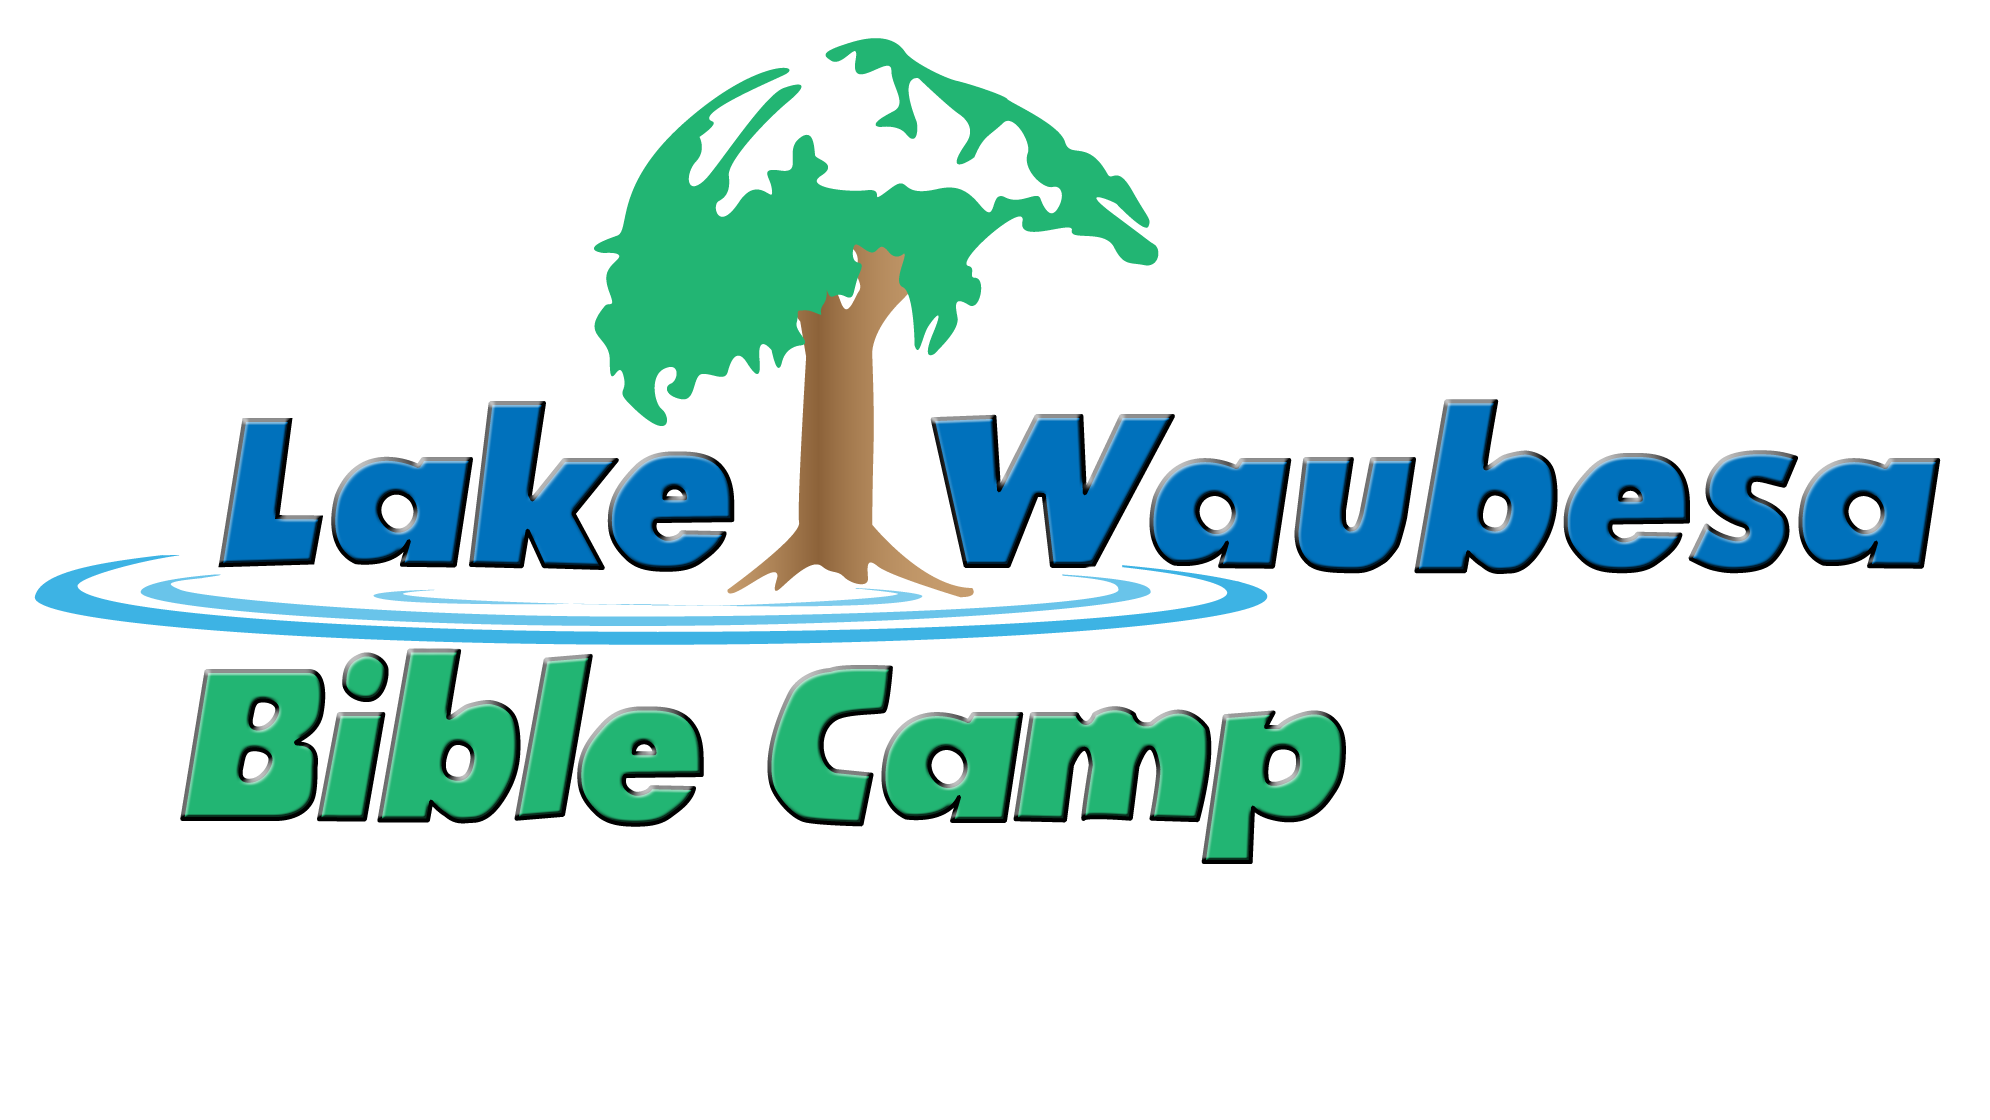 Lake Waubesa Bible Camp